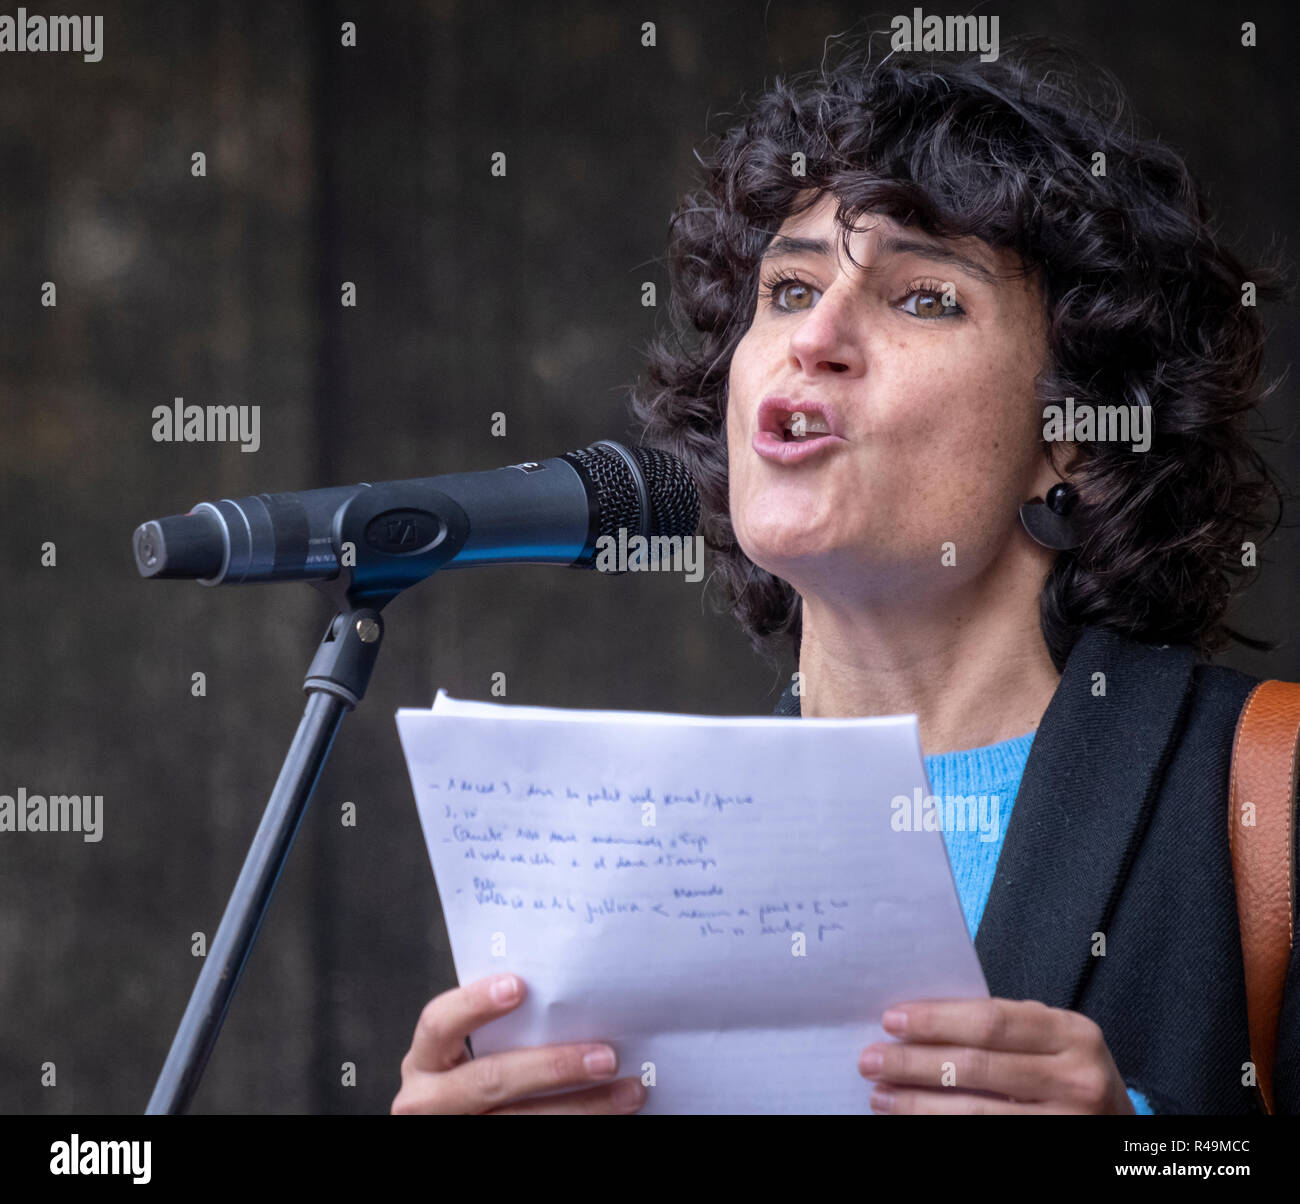 Cultural journalist Júlia Bertran is seen reading the manifesto of the demonstration during the protest. Thousands of people have taken to the streets in Barcelona on the occasion of the International Day for the Elimination of Violence against Women. - Stock Image